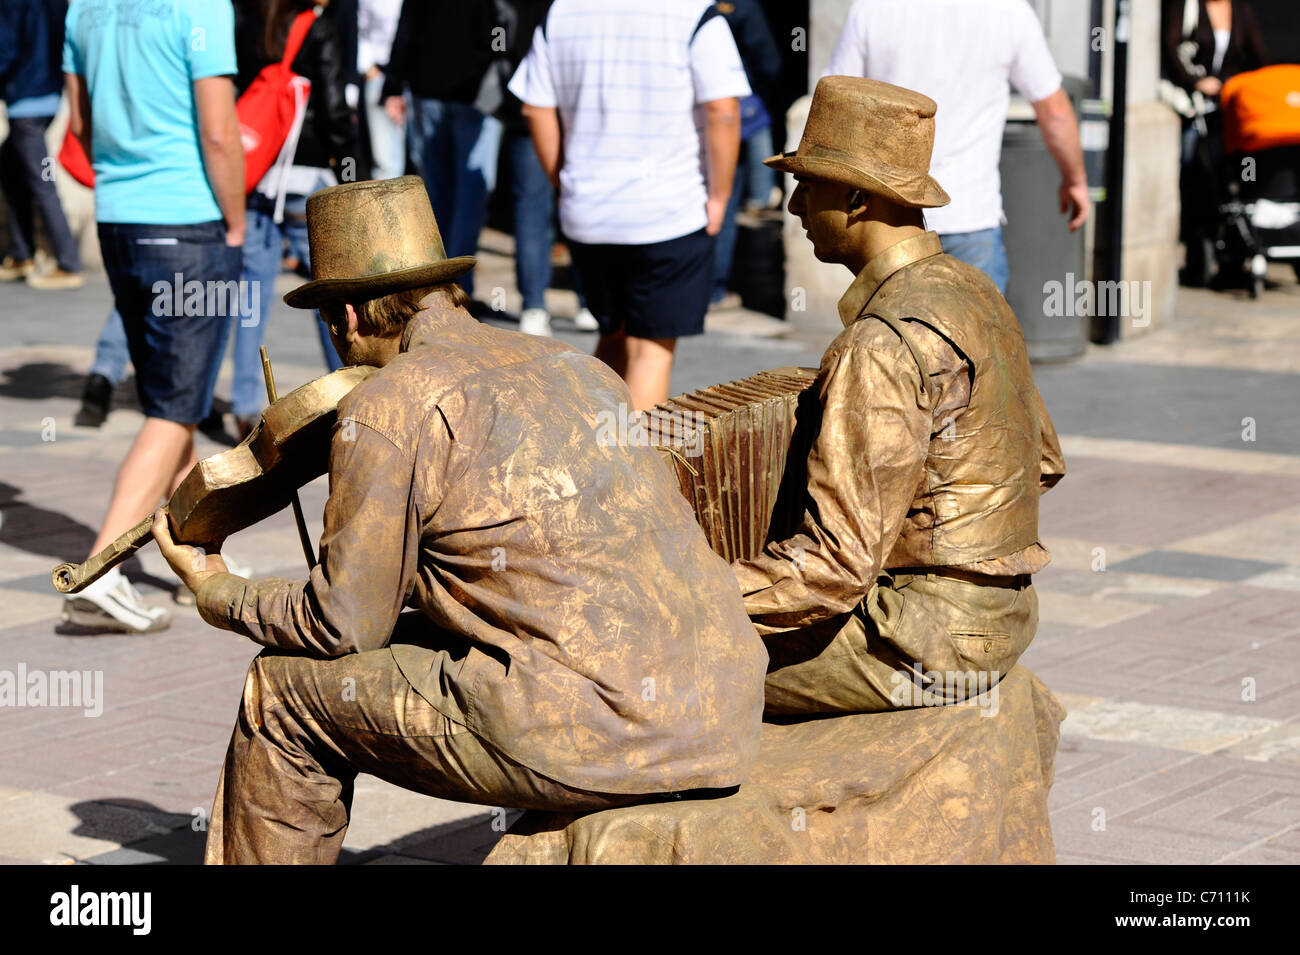 Street performers in Palma, Mallorca - Stock Image